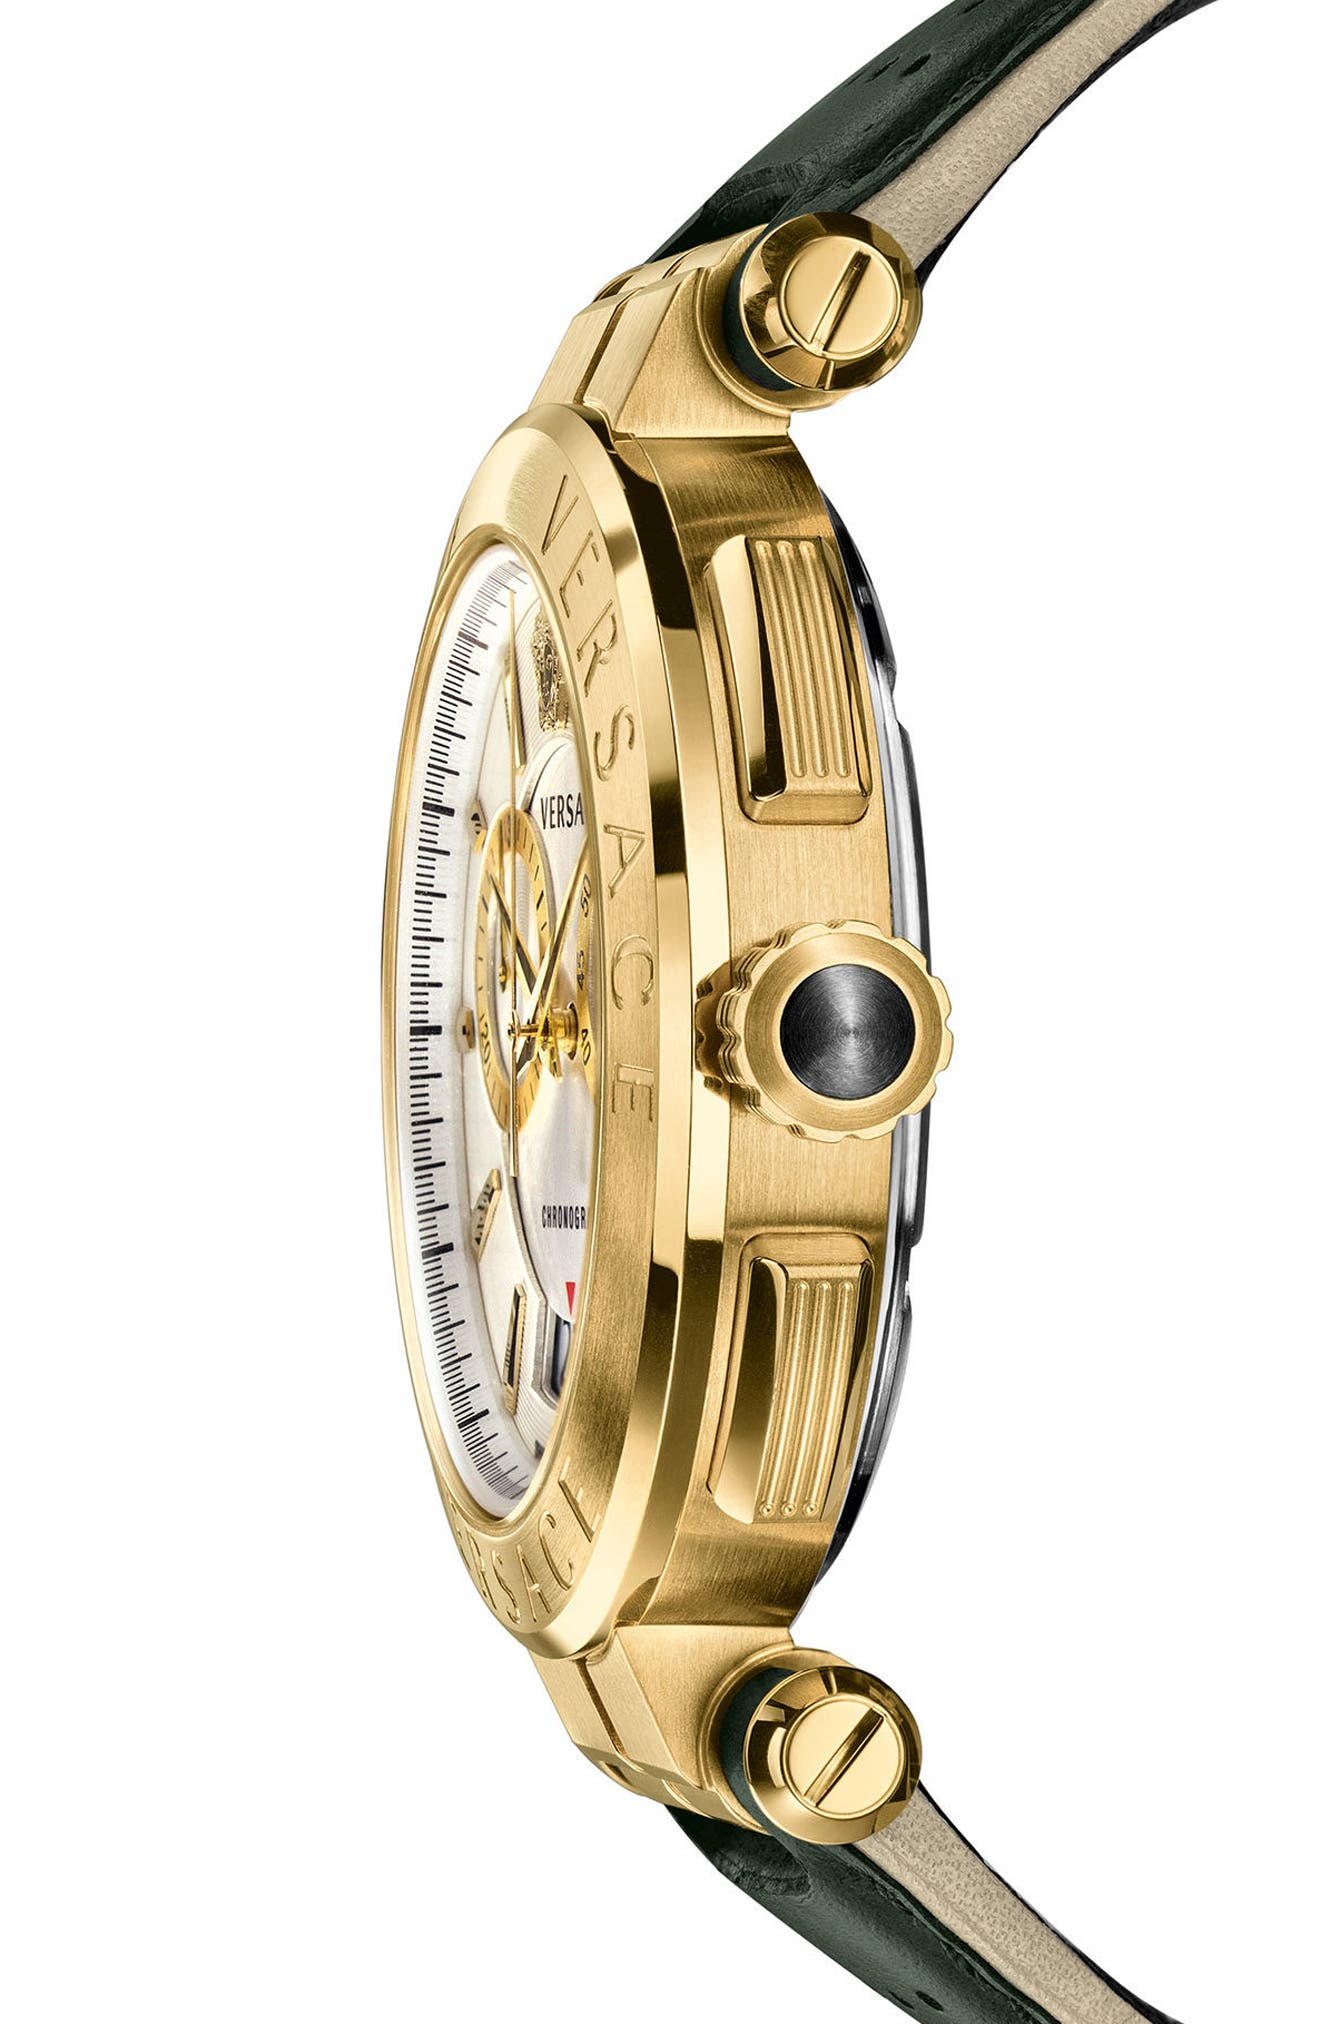 VERSACE, Aion Chronograph Leather Strap Watch, 45mm, Alternate thumbnail 3, color, GREY/ SILVER/ GOLD